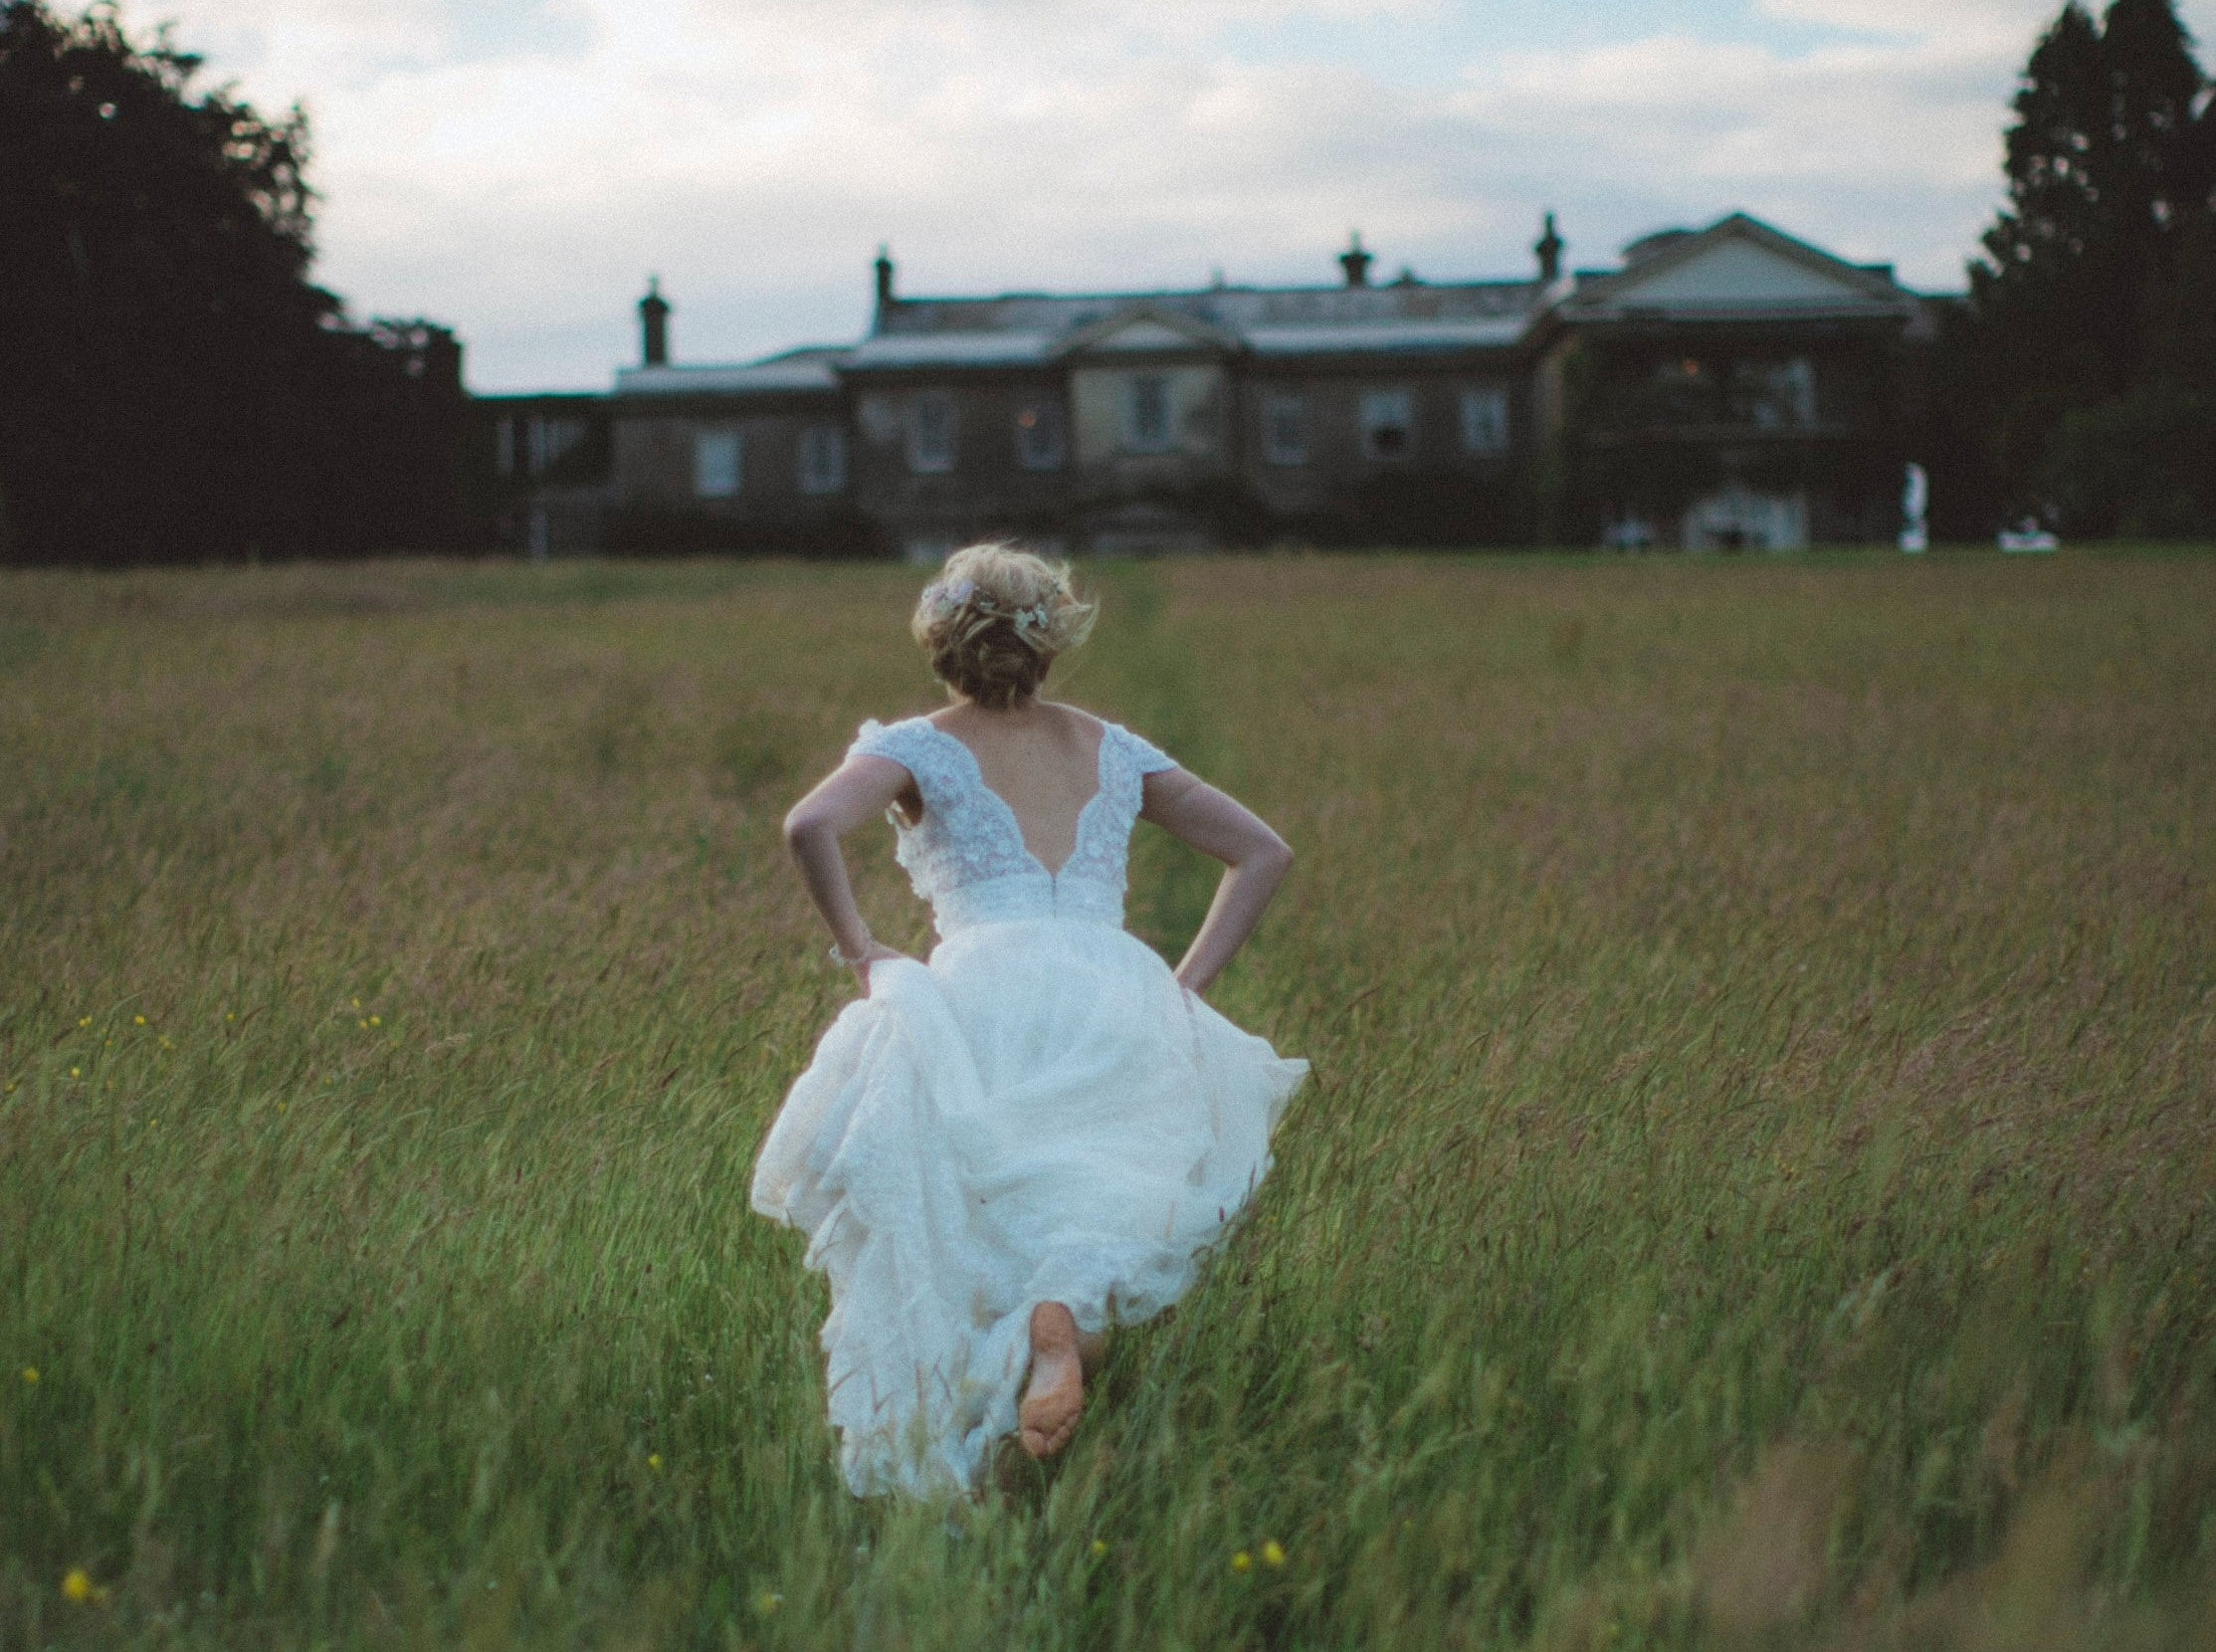 Woman in wedding dress runs through field towards large country house